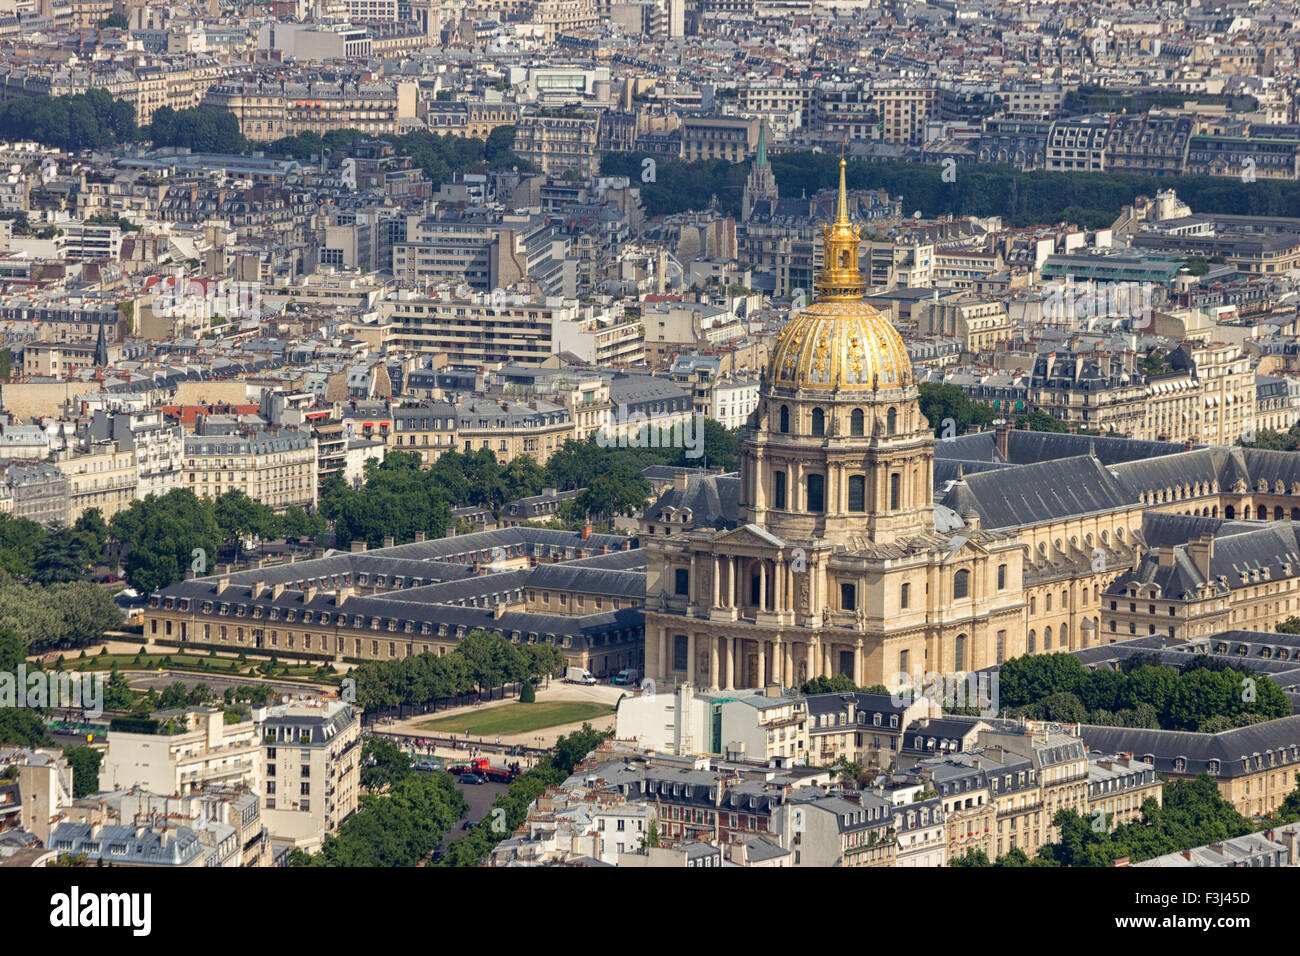 L'Hotel national des Invalides. The complex of buildings contains museums and monuments relating to the mi Stock Photo